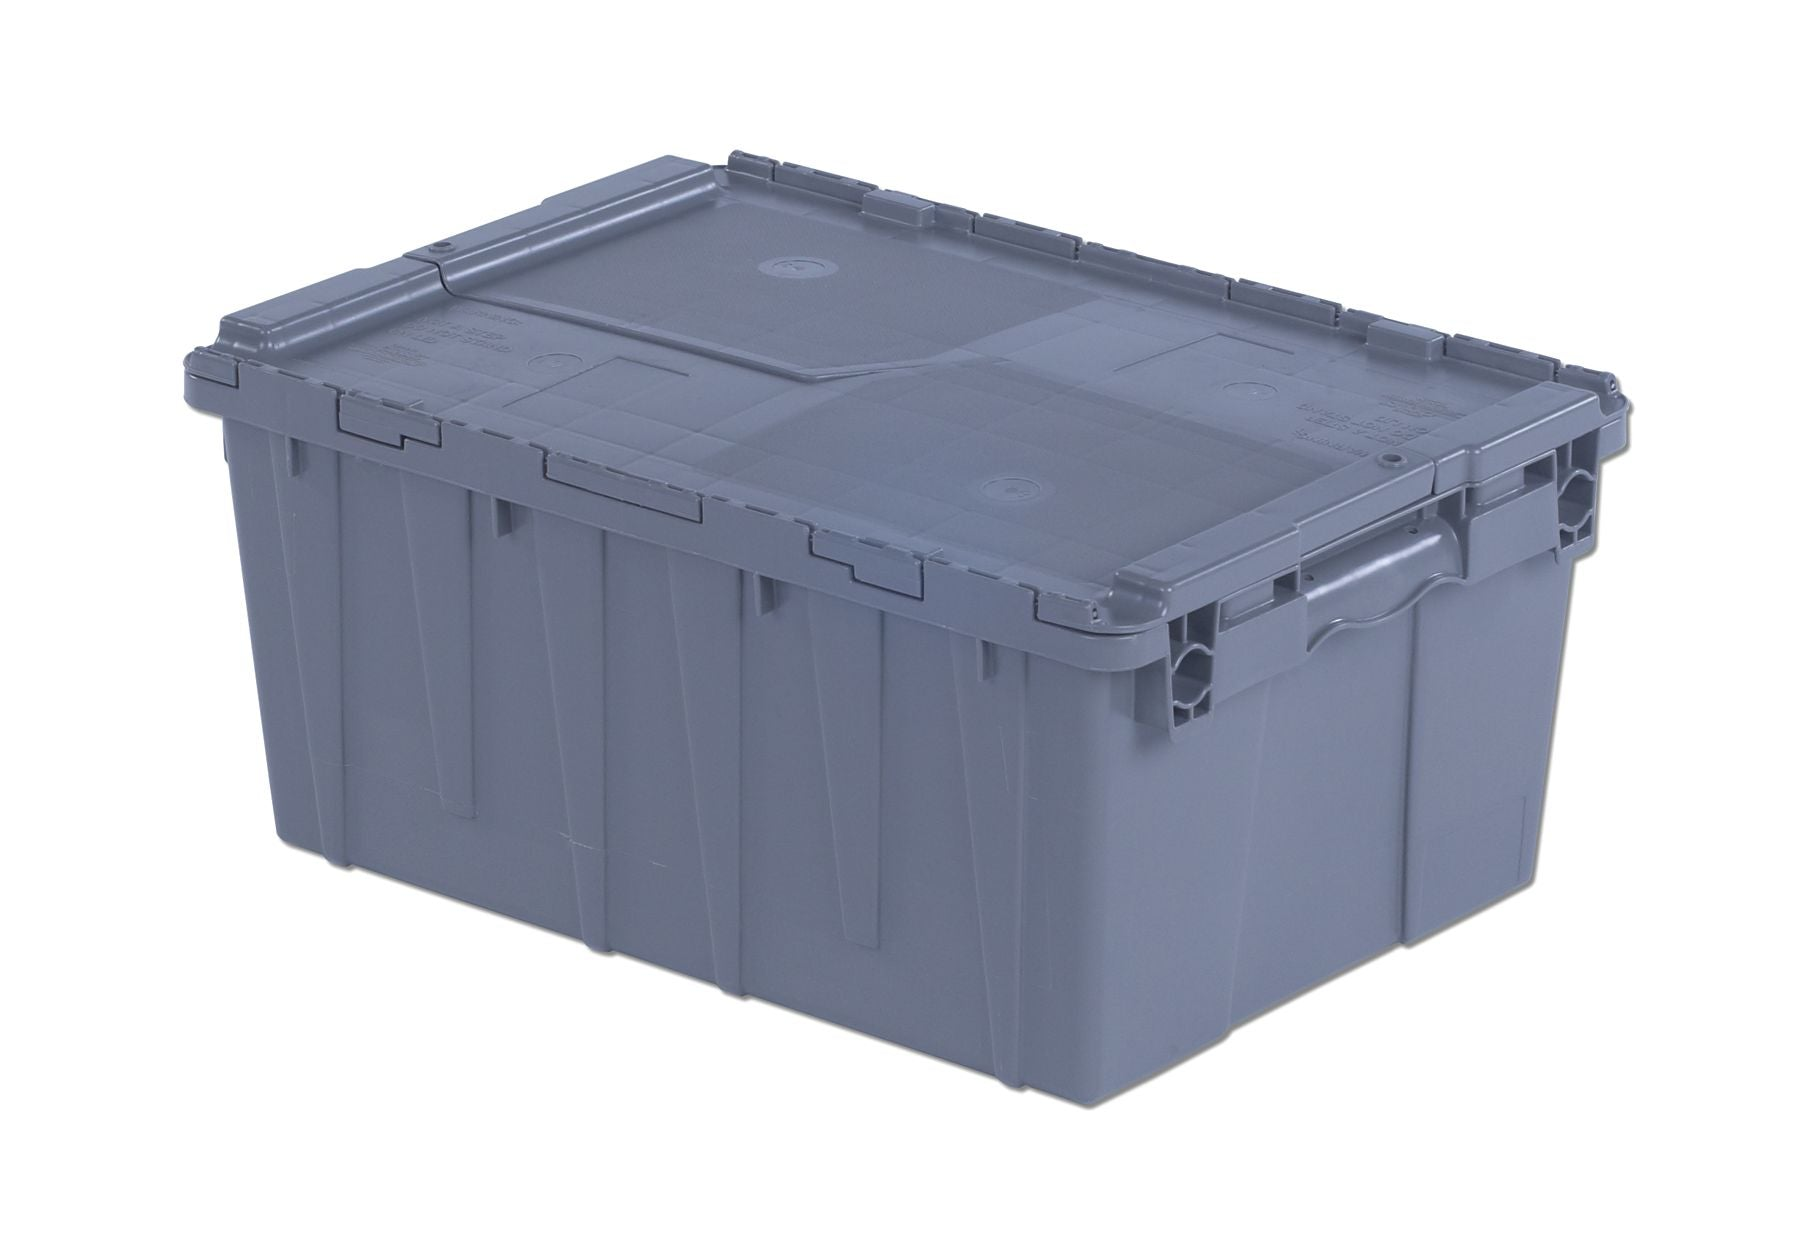 FP143 Flipak Container | 21x15x9 Attached Lid Container